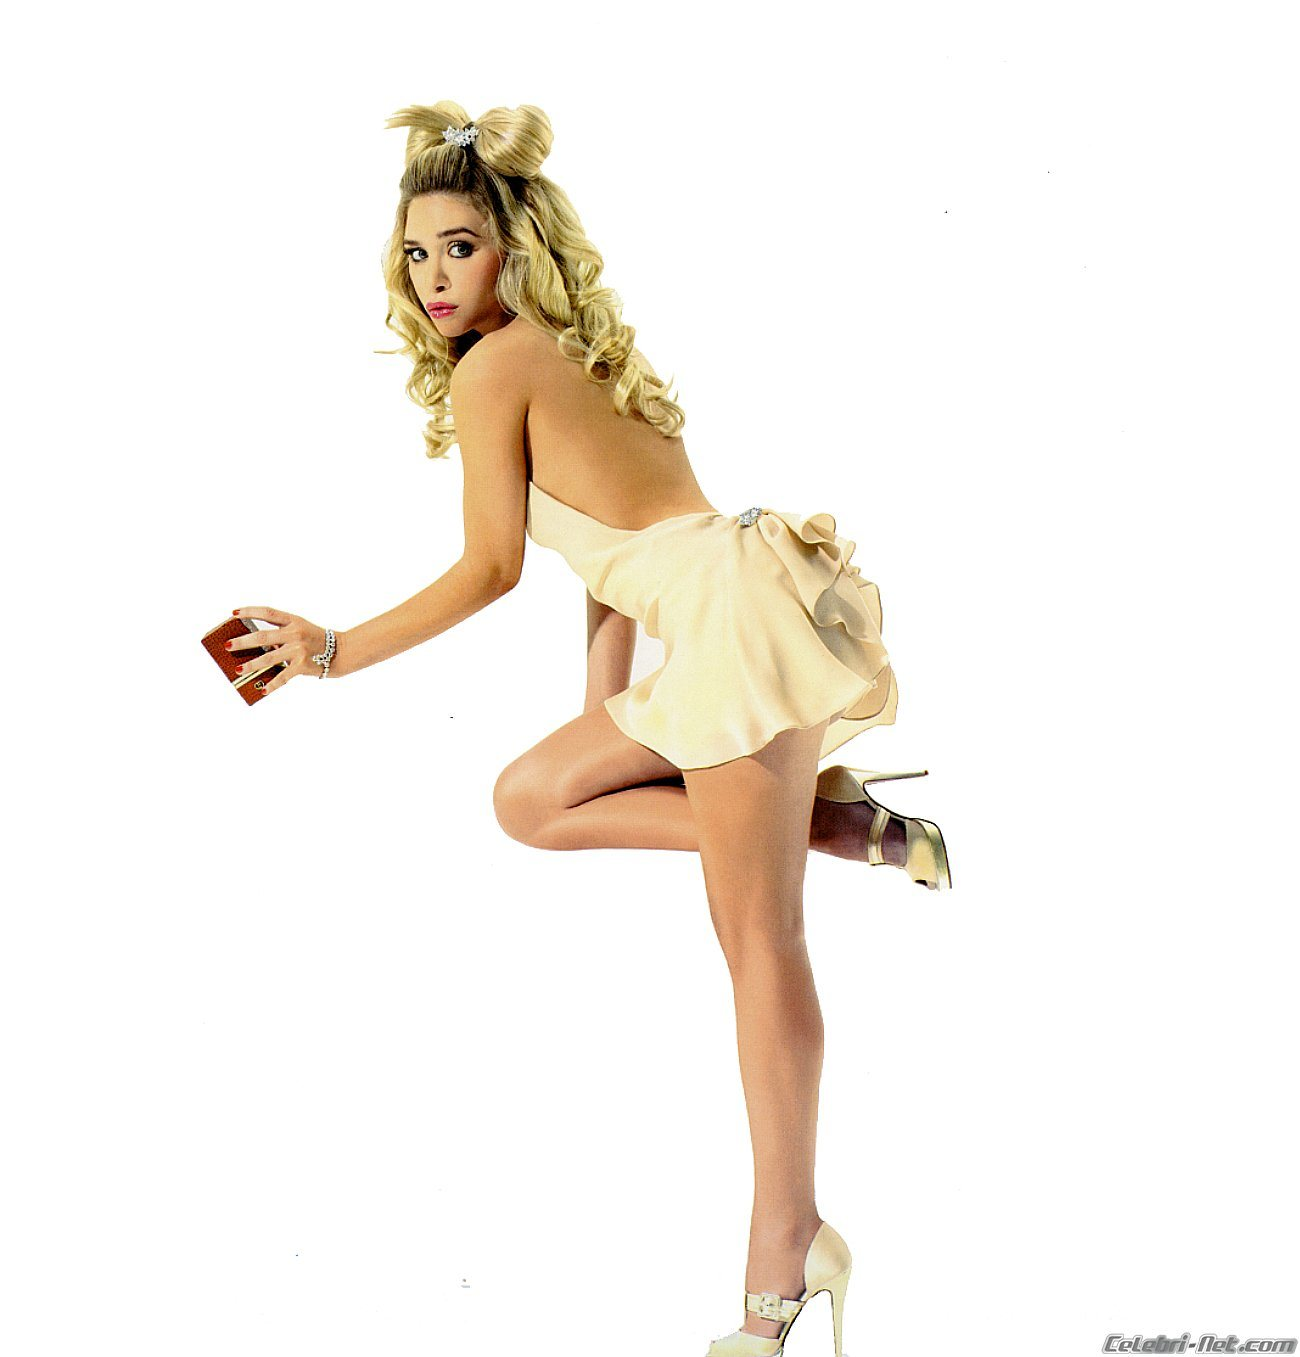 Nude pin up mobile pics 4